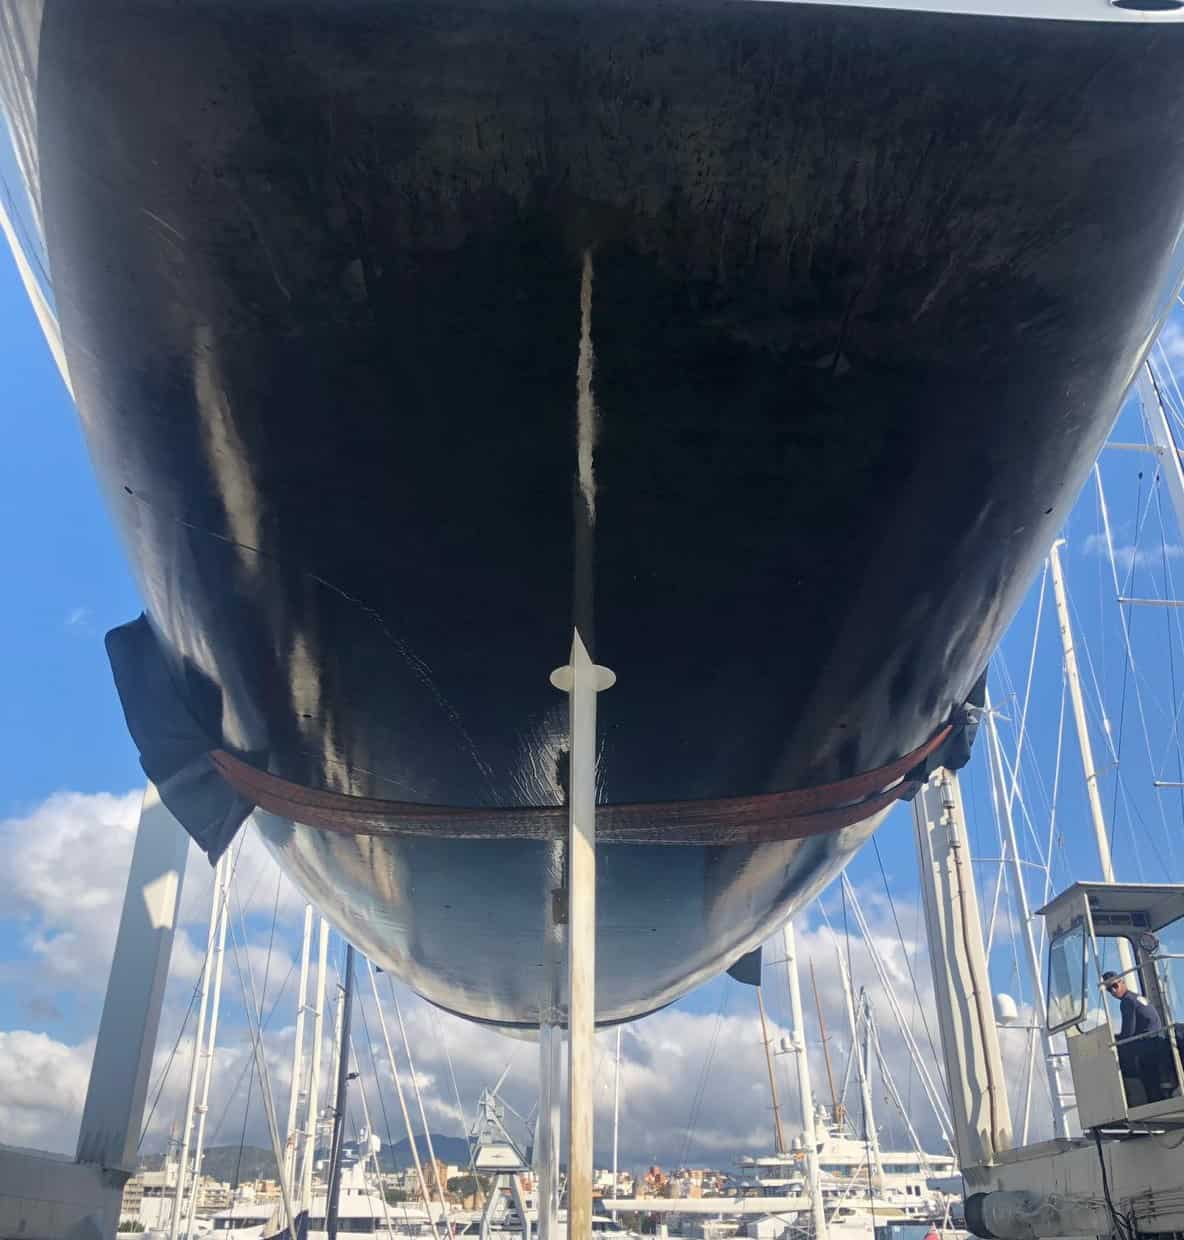 close up of black yacht hull exterior in dock